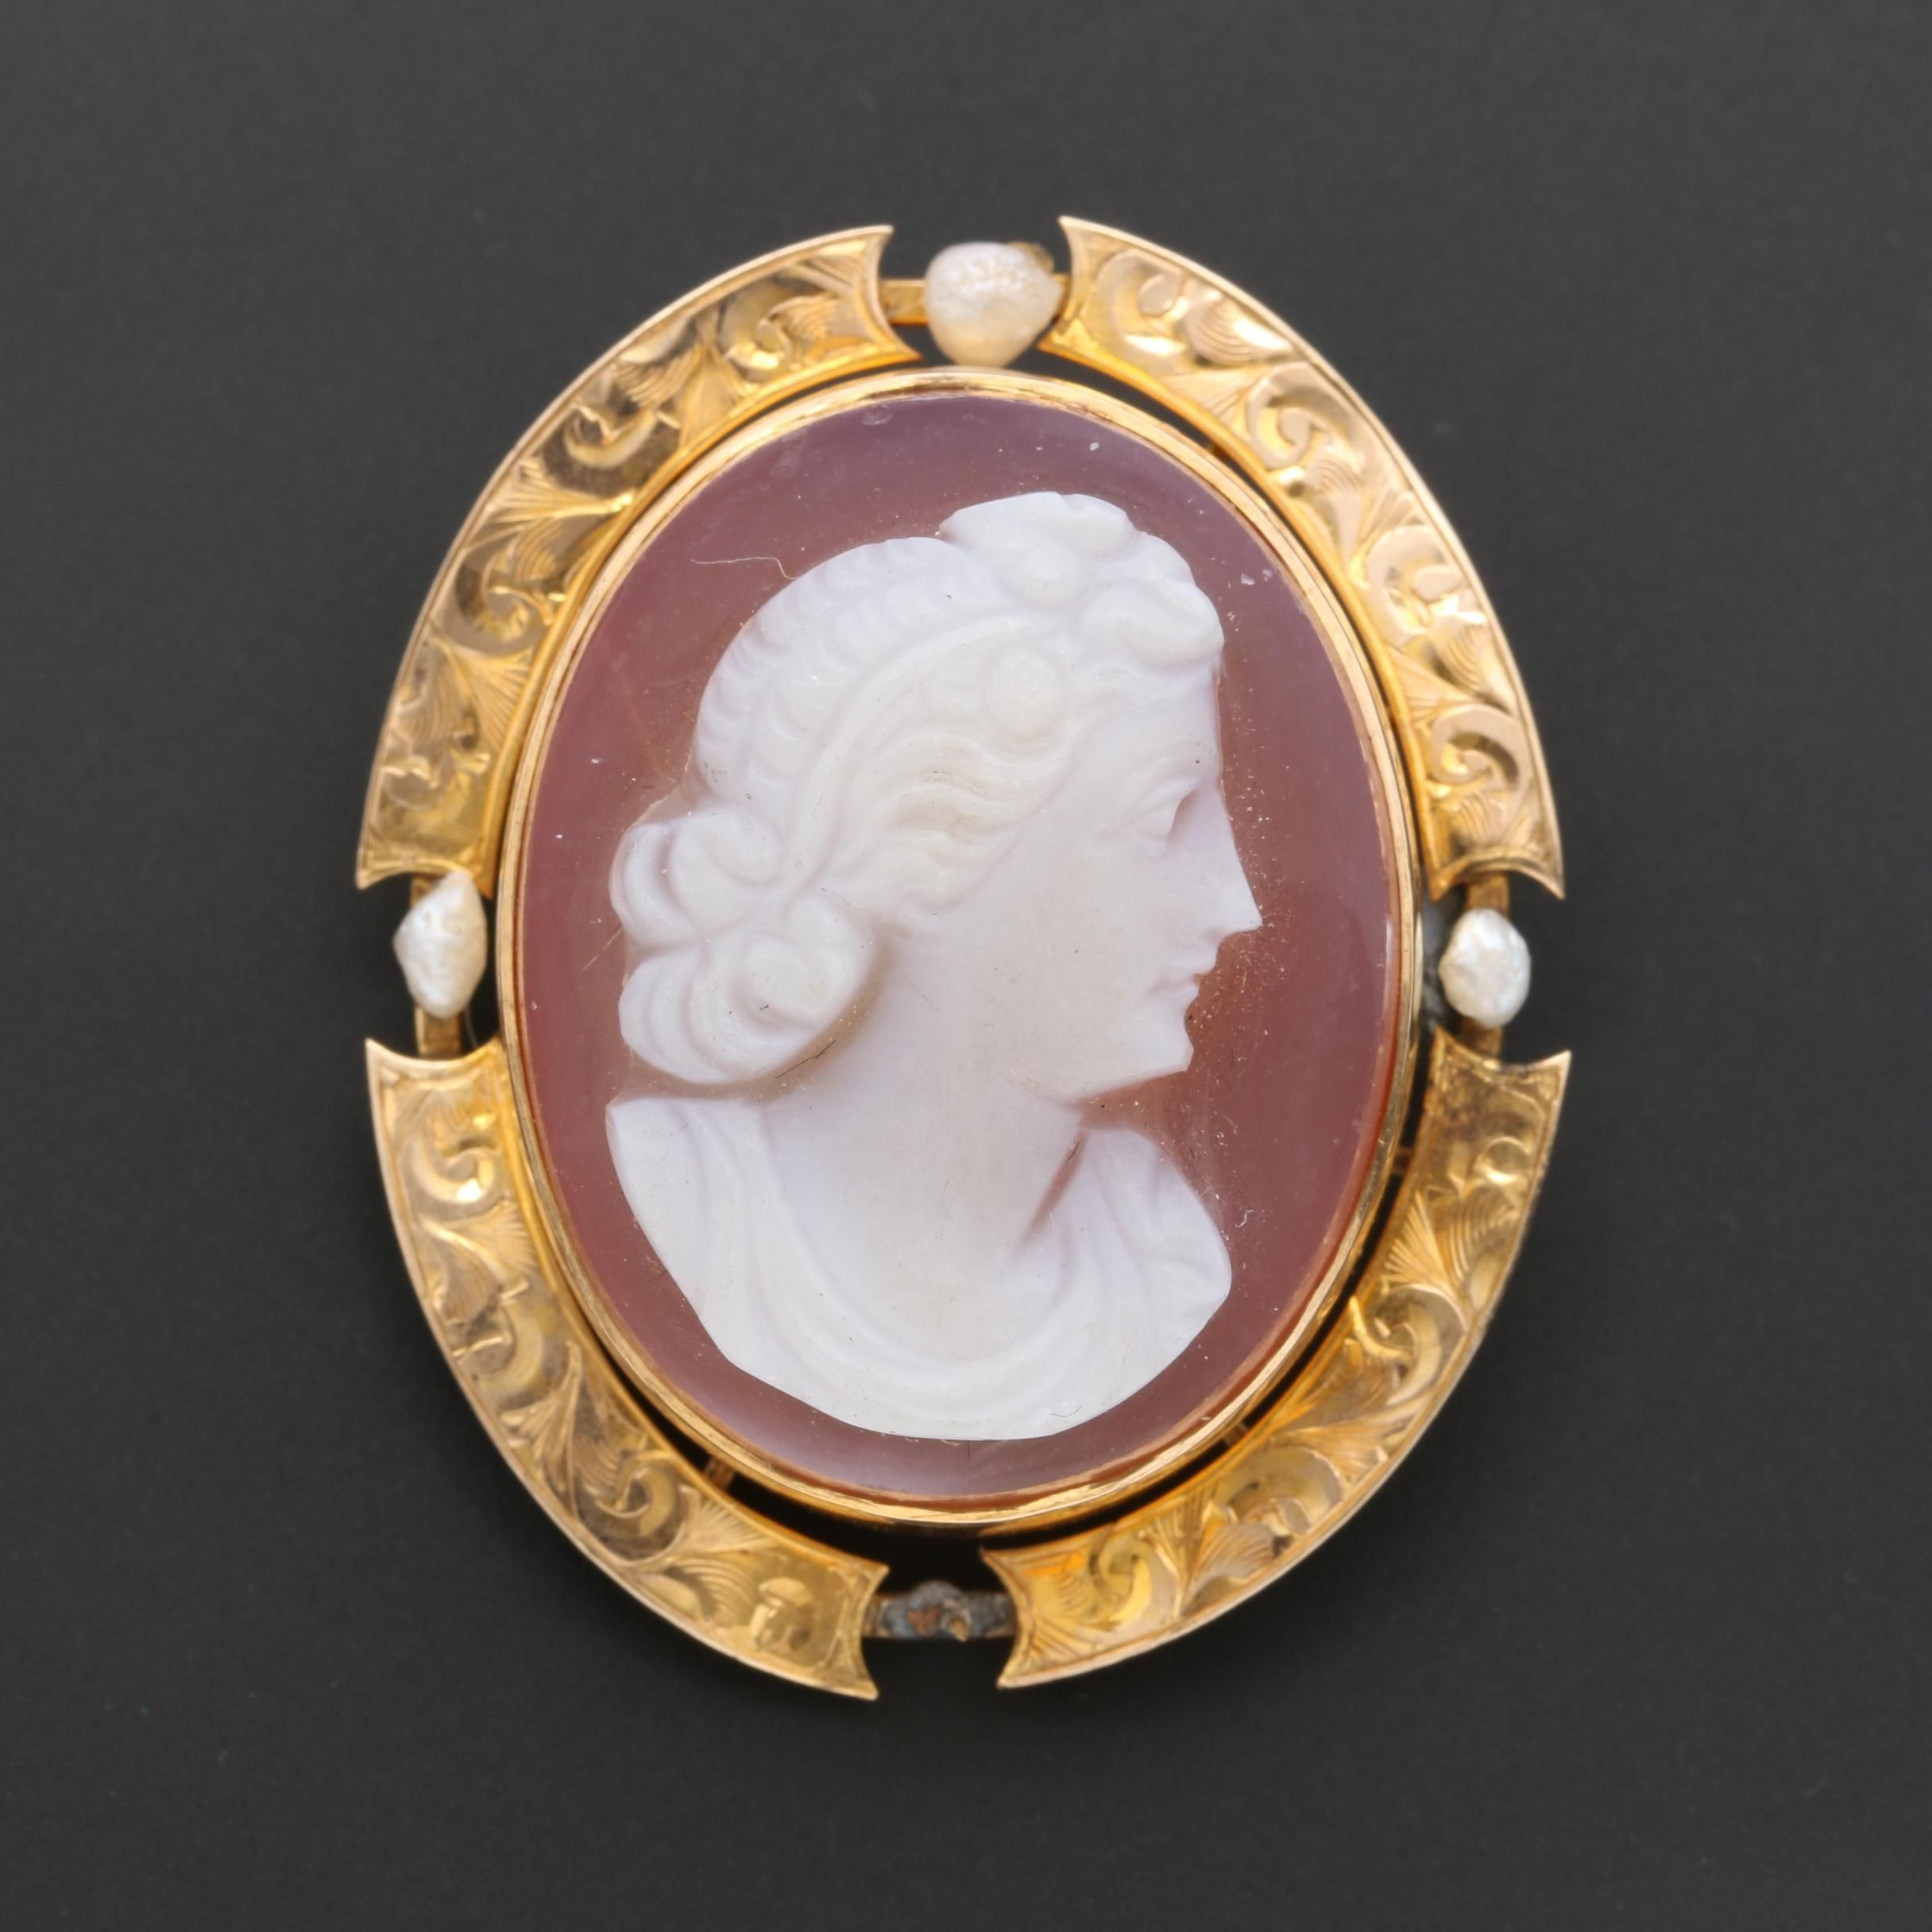 Antique 10K Yellow Gold Agate and Cultured Pearl Cameo Brooch